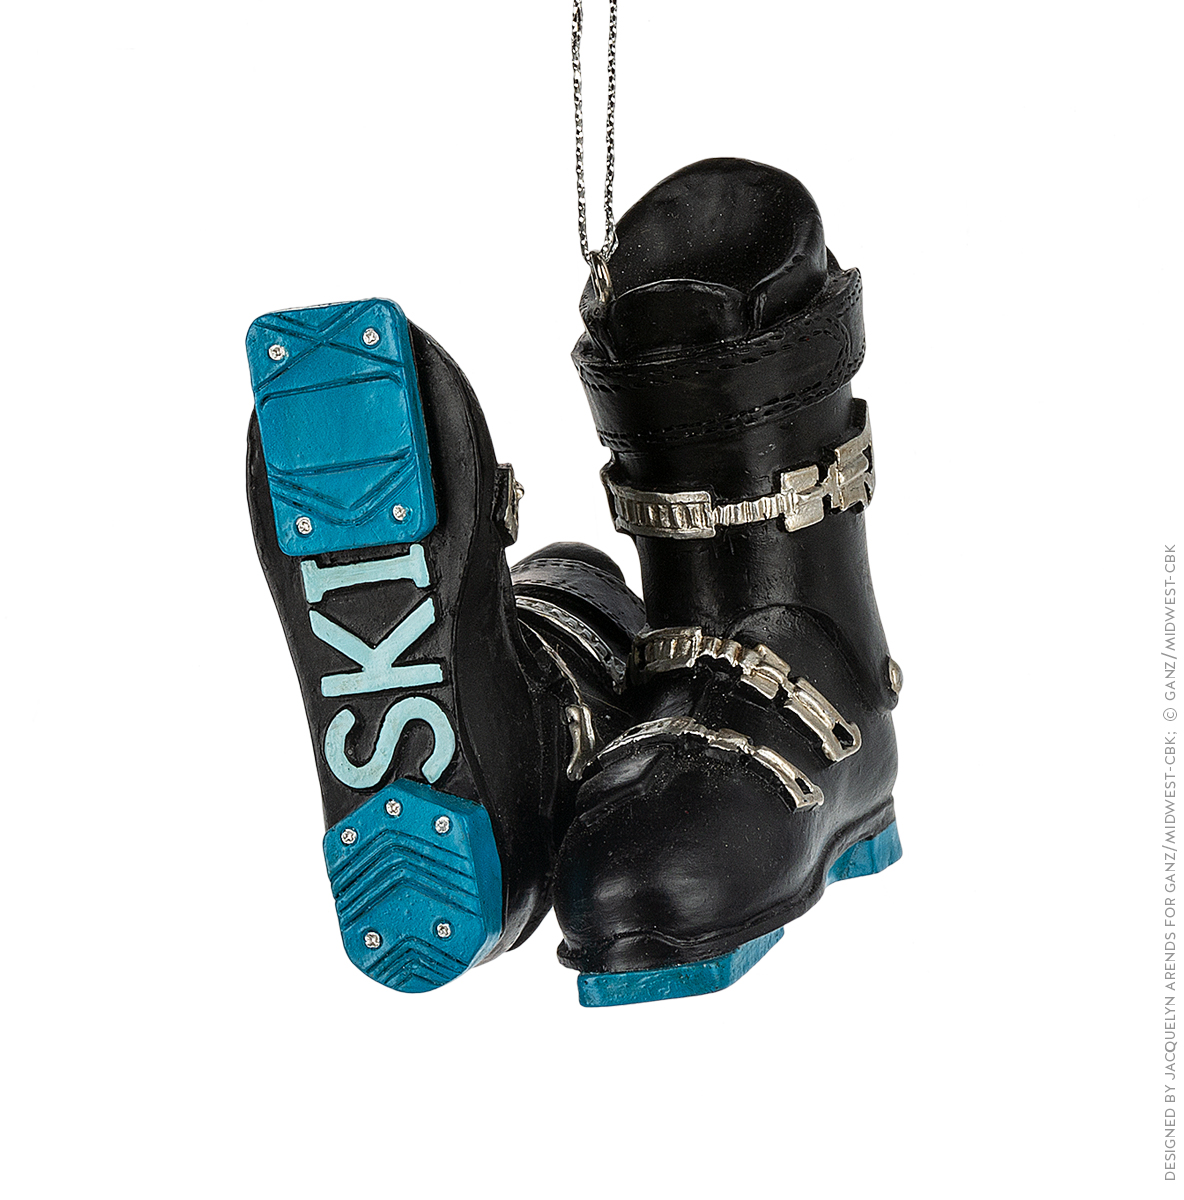 Specialty Ornaments Ski Boots ornament by Jacquelyn Arends; © Ganz/Midwest-CBK 2019